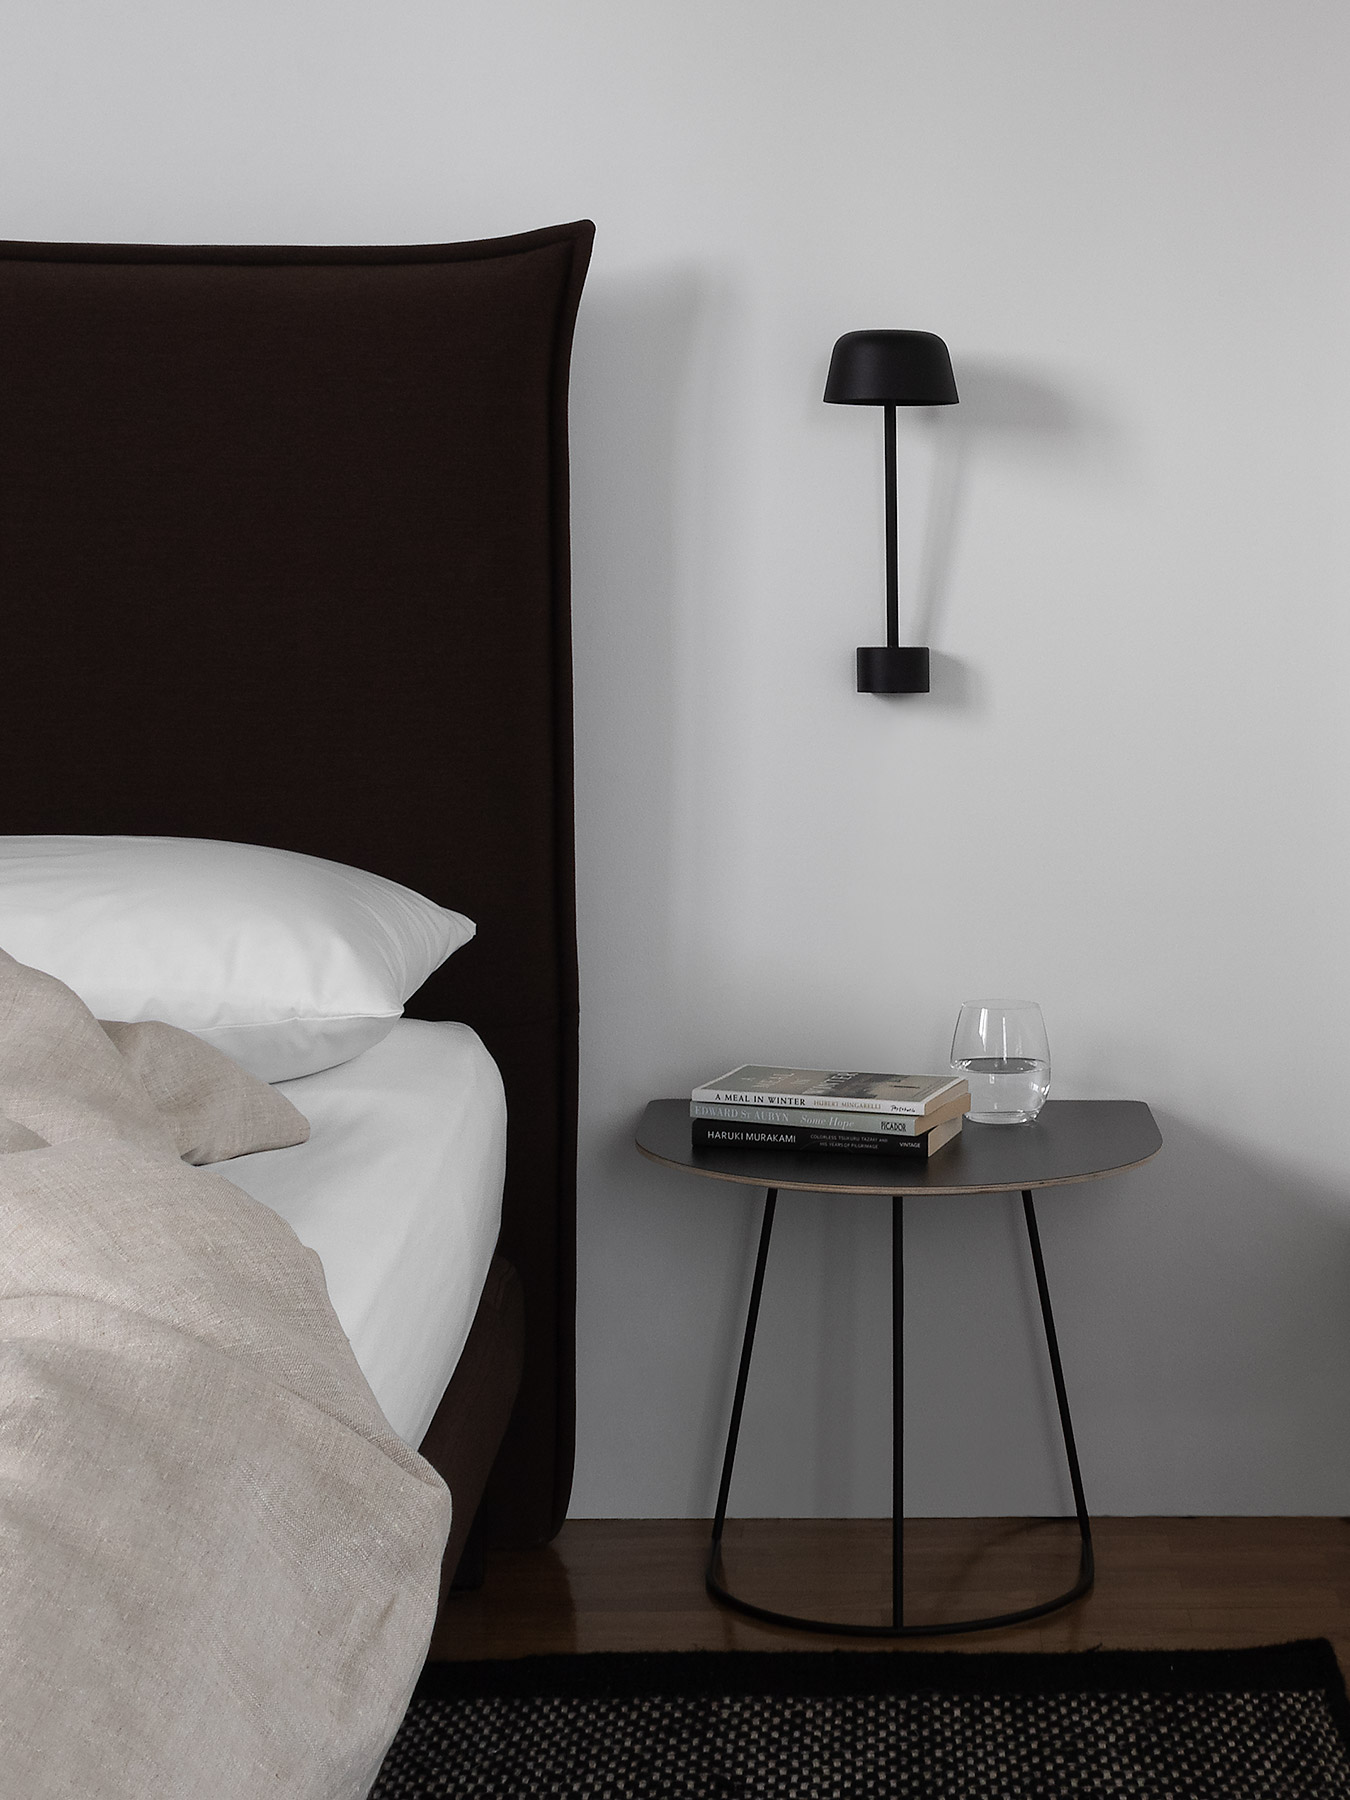 Bed with natural linen and contemporary dark brown headboard, modern black Scandinavian wall light and table, black rug